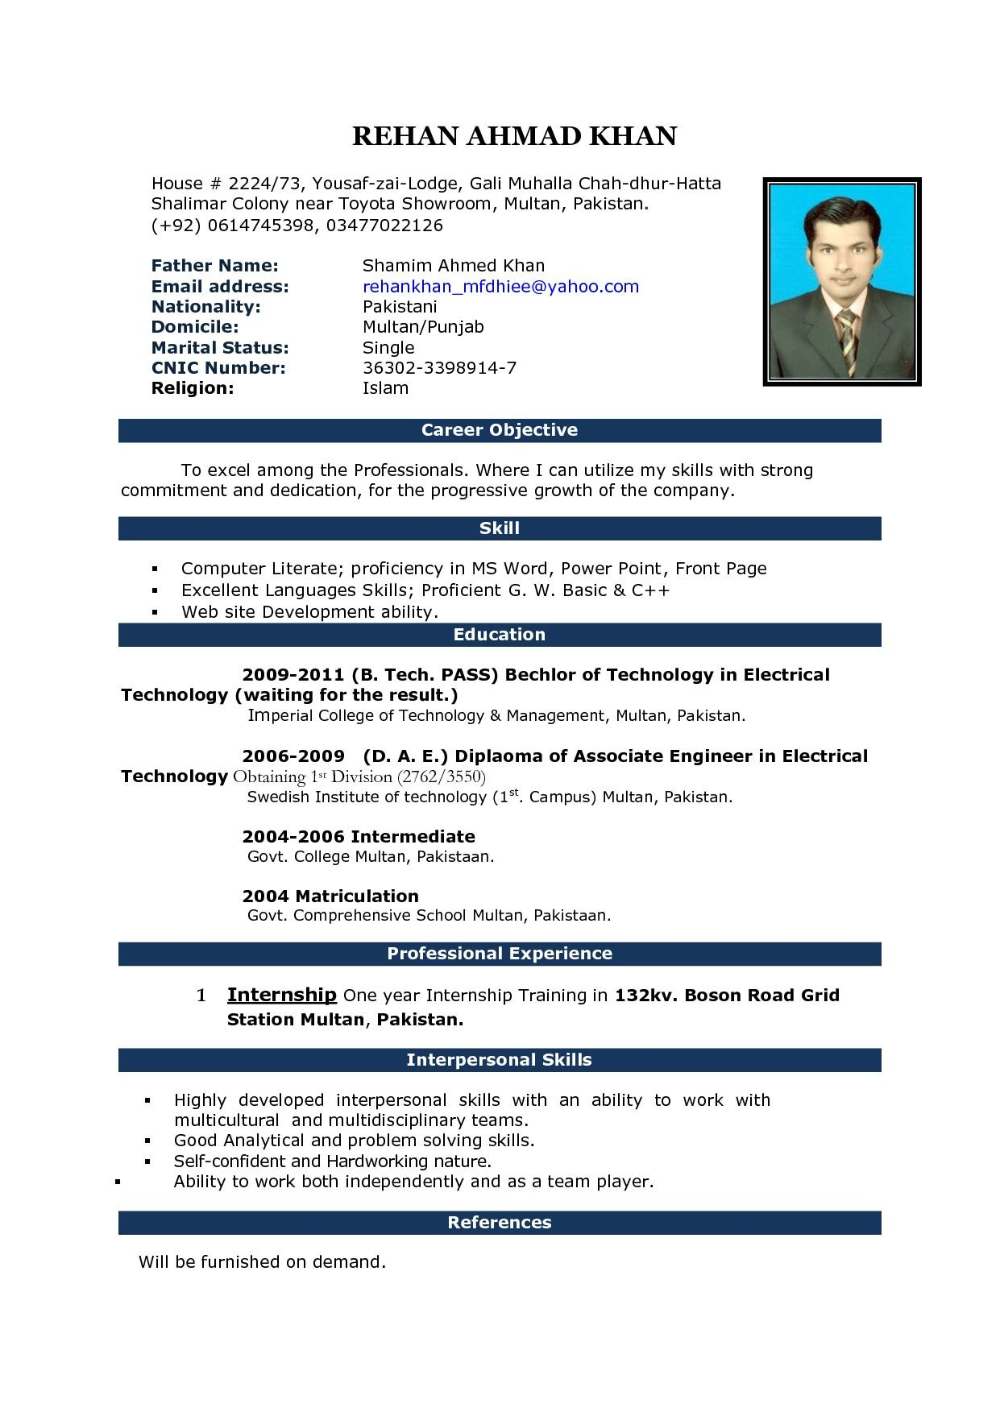 Free Download Cv Format In Ms Word Fieldstationco Microsoft Office Within Microsoft Microsoft Word Resume Template Resume Template Word Resume Format Download